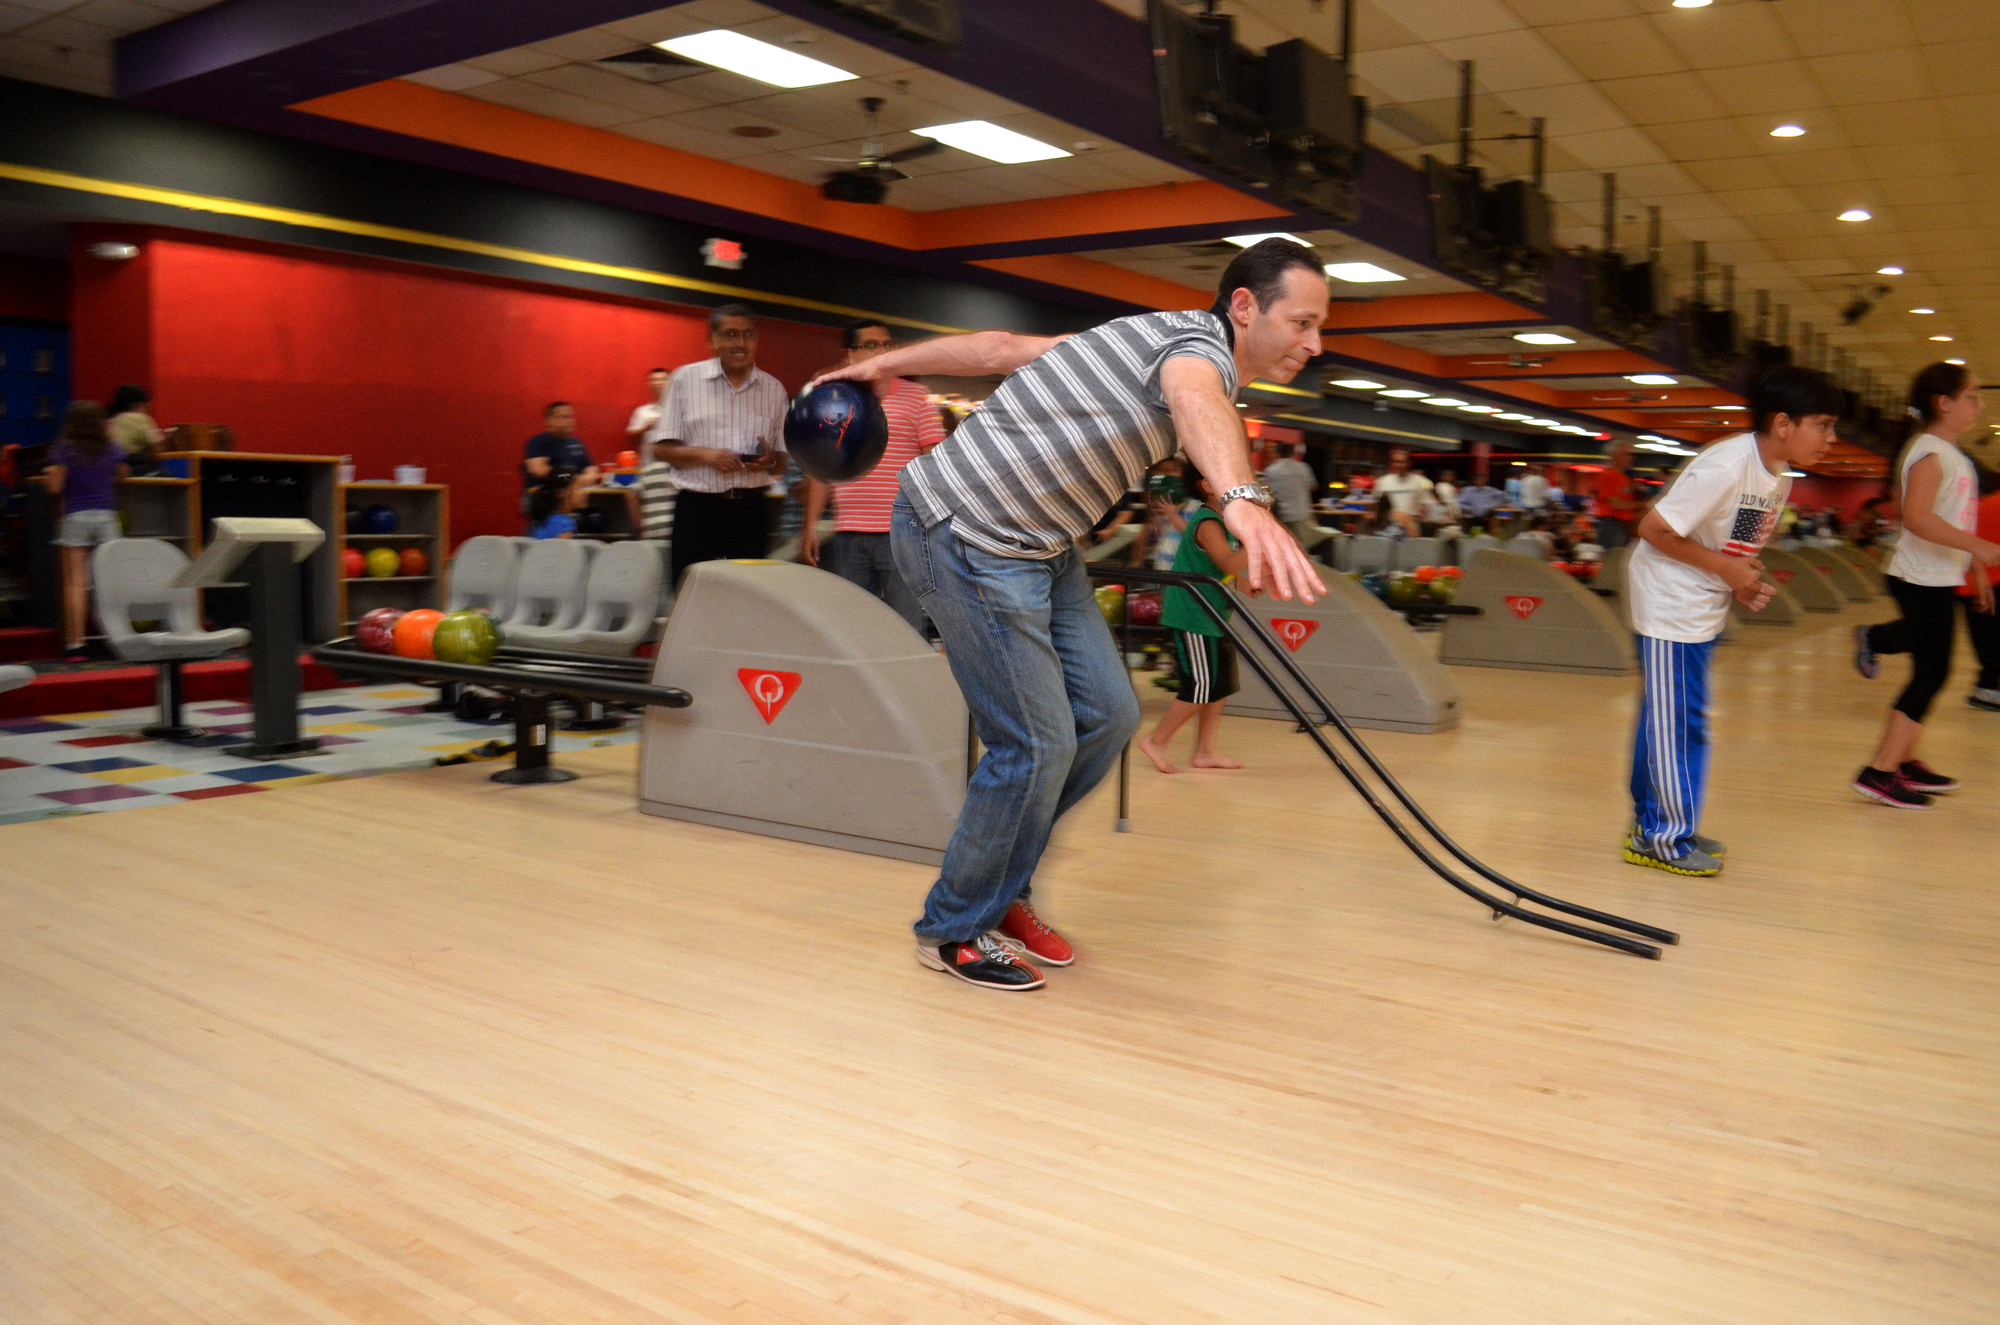 Adam Ashe lined up his shot at the Barnum Woods PTA's Father's Day bowling night.